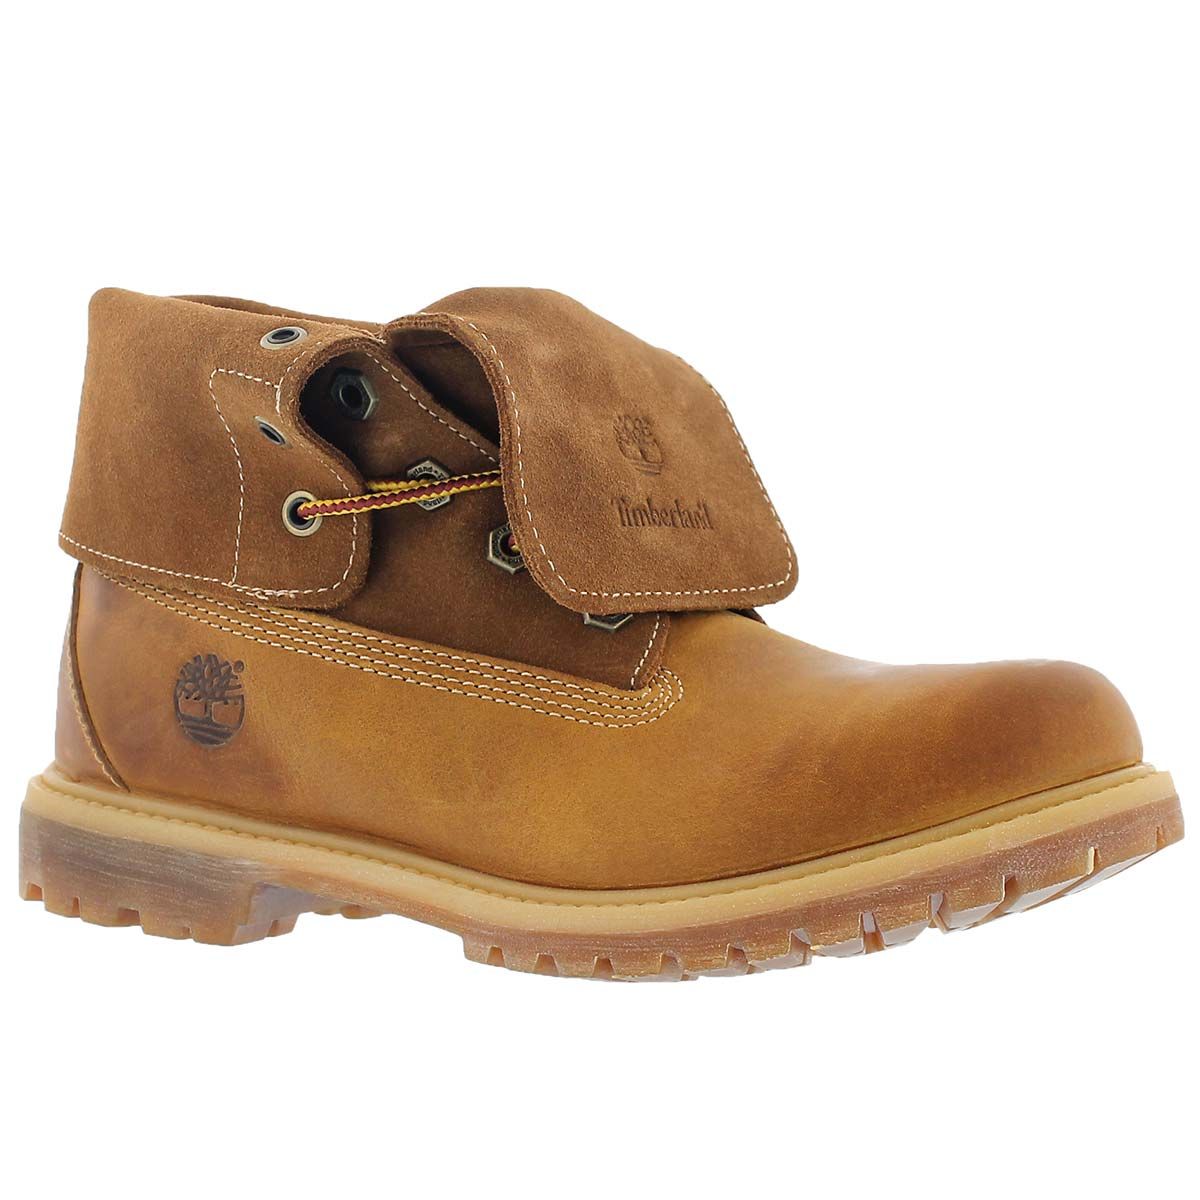 Lds Suede Roll-Top wheat ankle boot